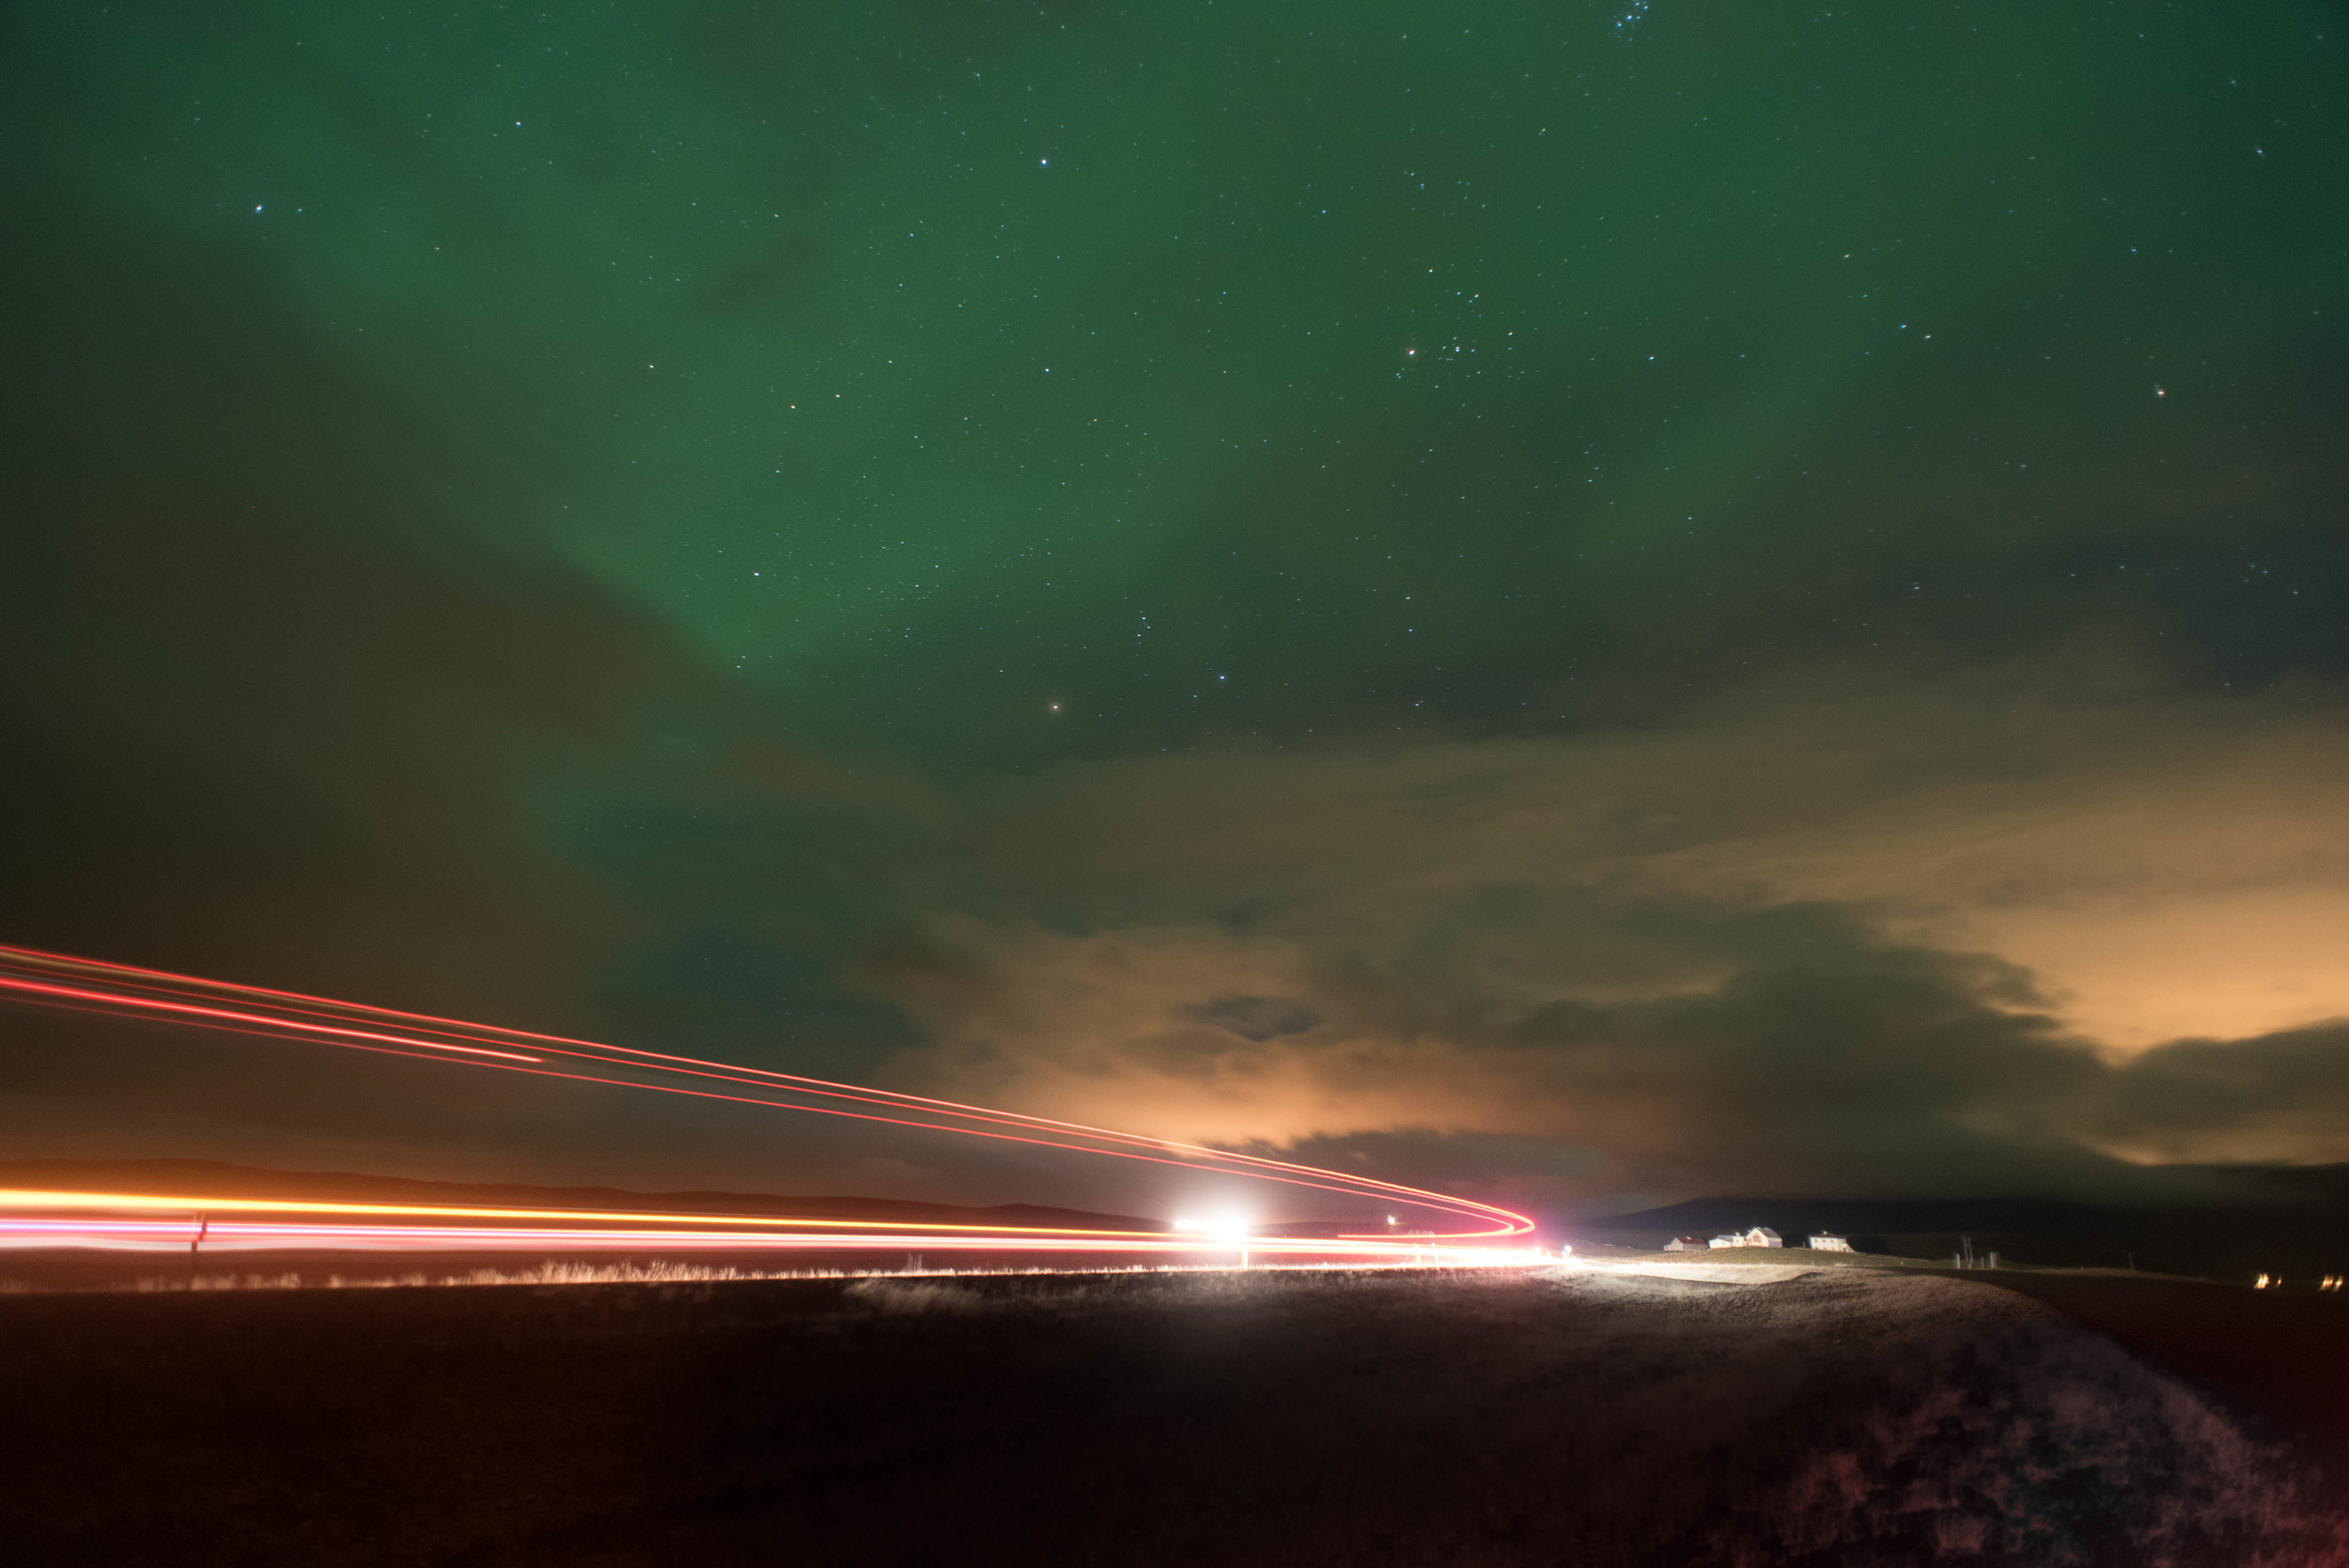 Aurora under light trails